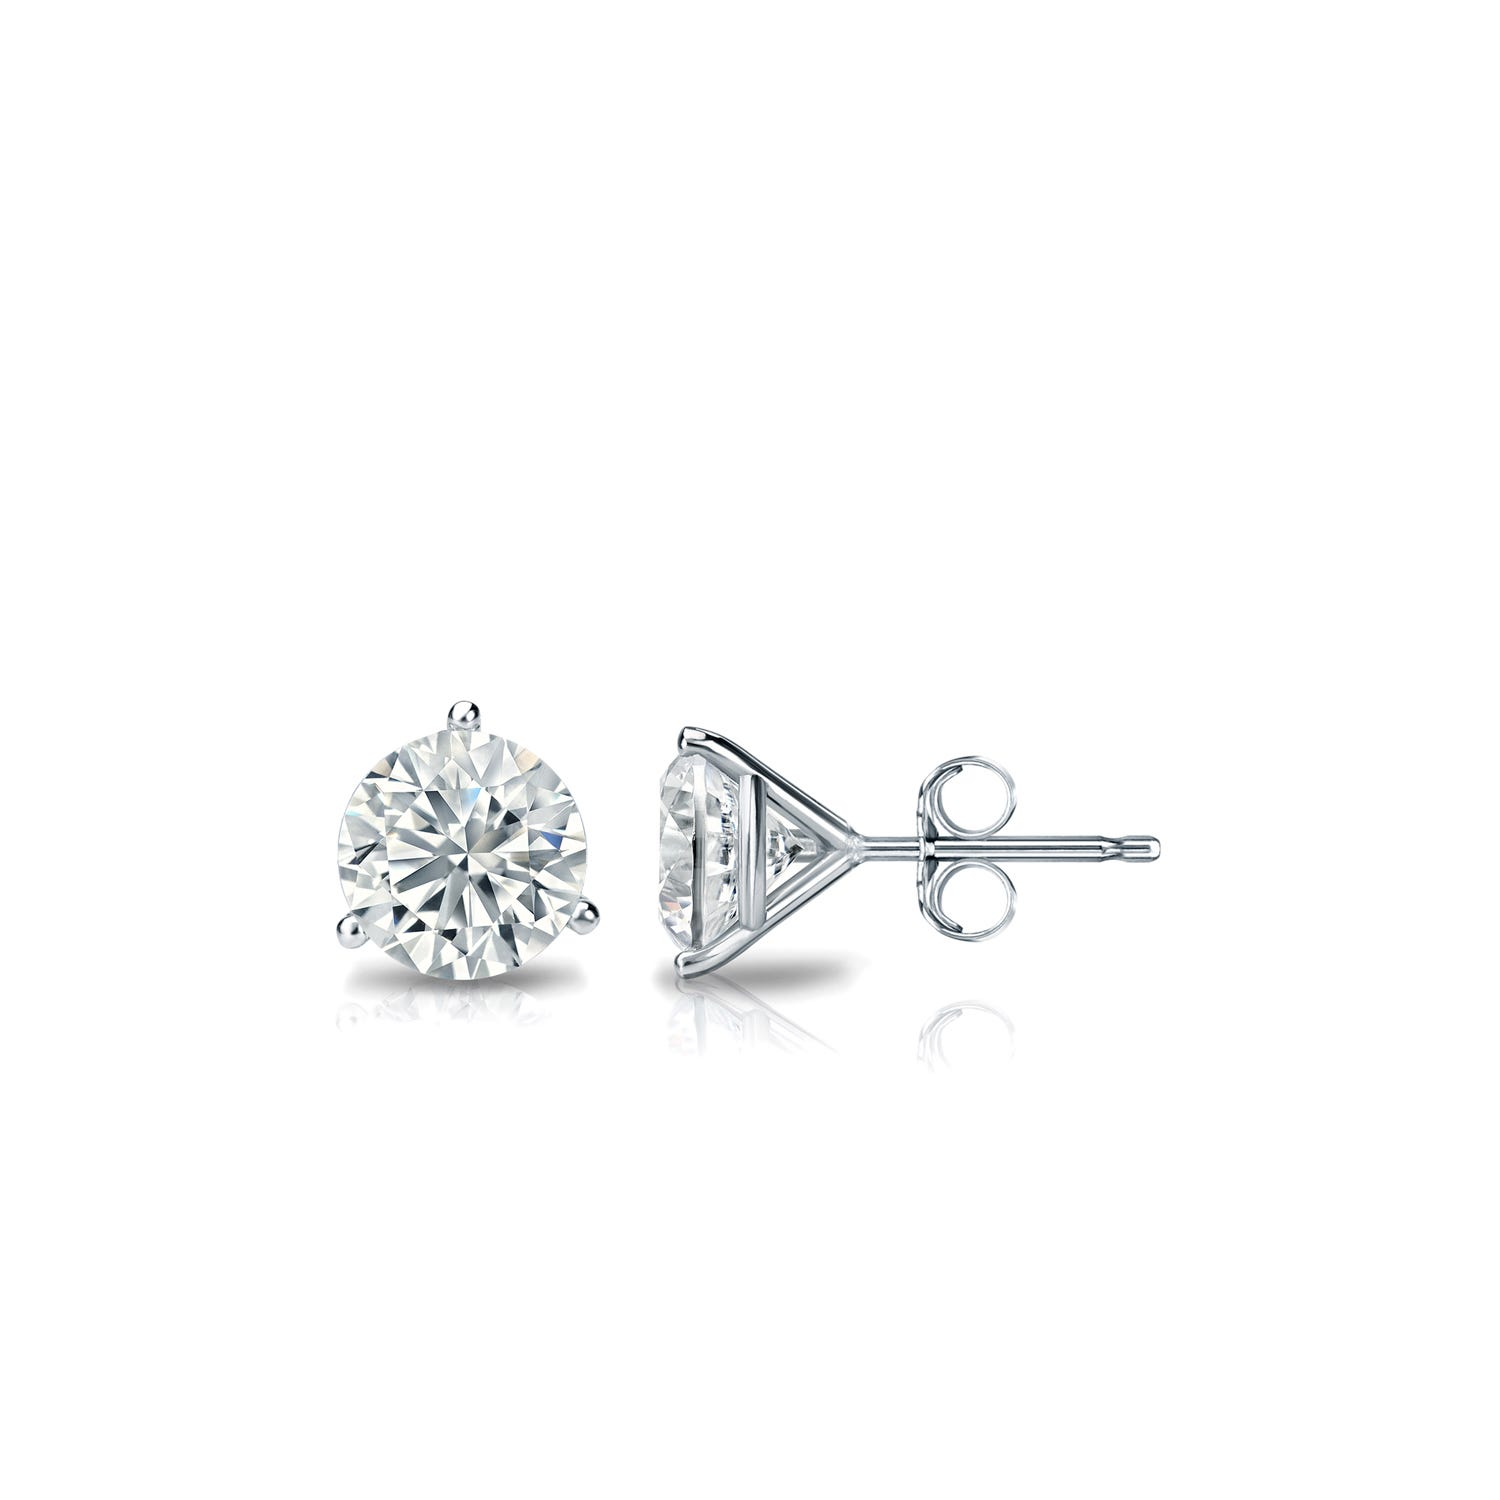 3/8 CTTW Round Diamond Solitaire Stud Earrings IJ SI2 in Platinum 3-Prong Setting